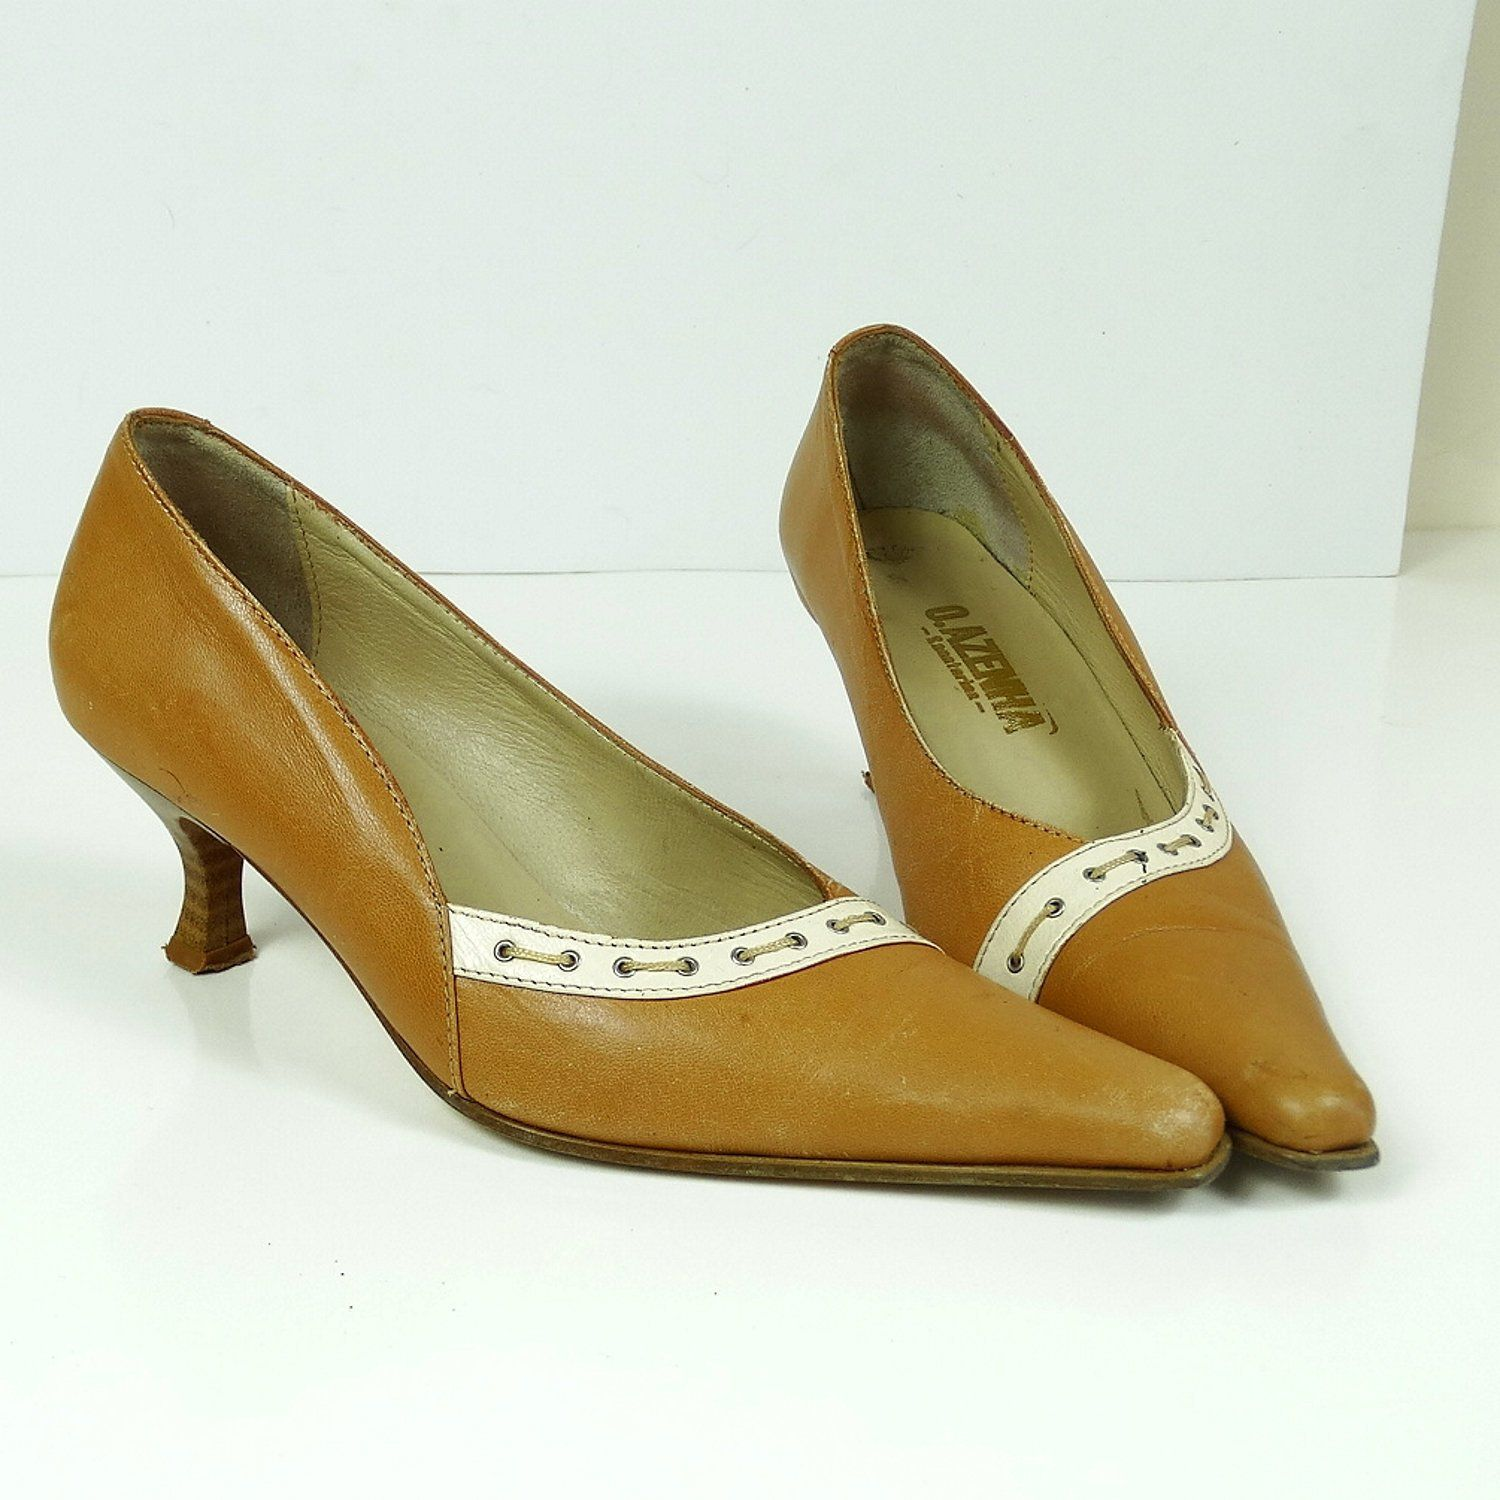 1950s Style 50s Shoes Size 35 Vintage Heels Leather Shoes Women Kitten Heel Pointed Toe 50s Pumps Beige Shoes Vintage Mode